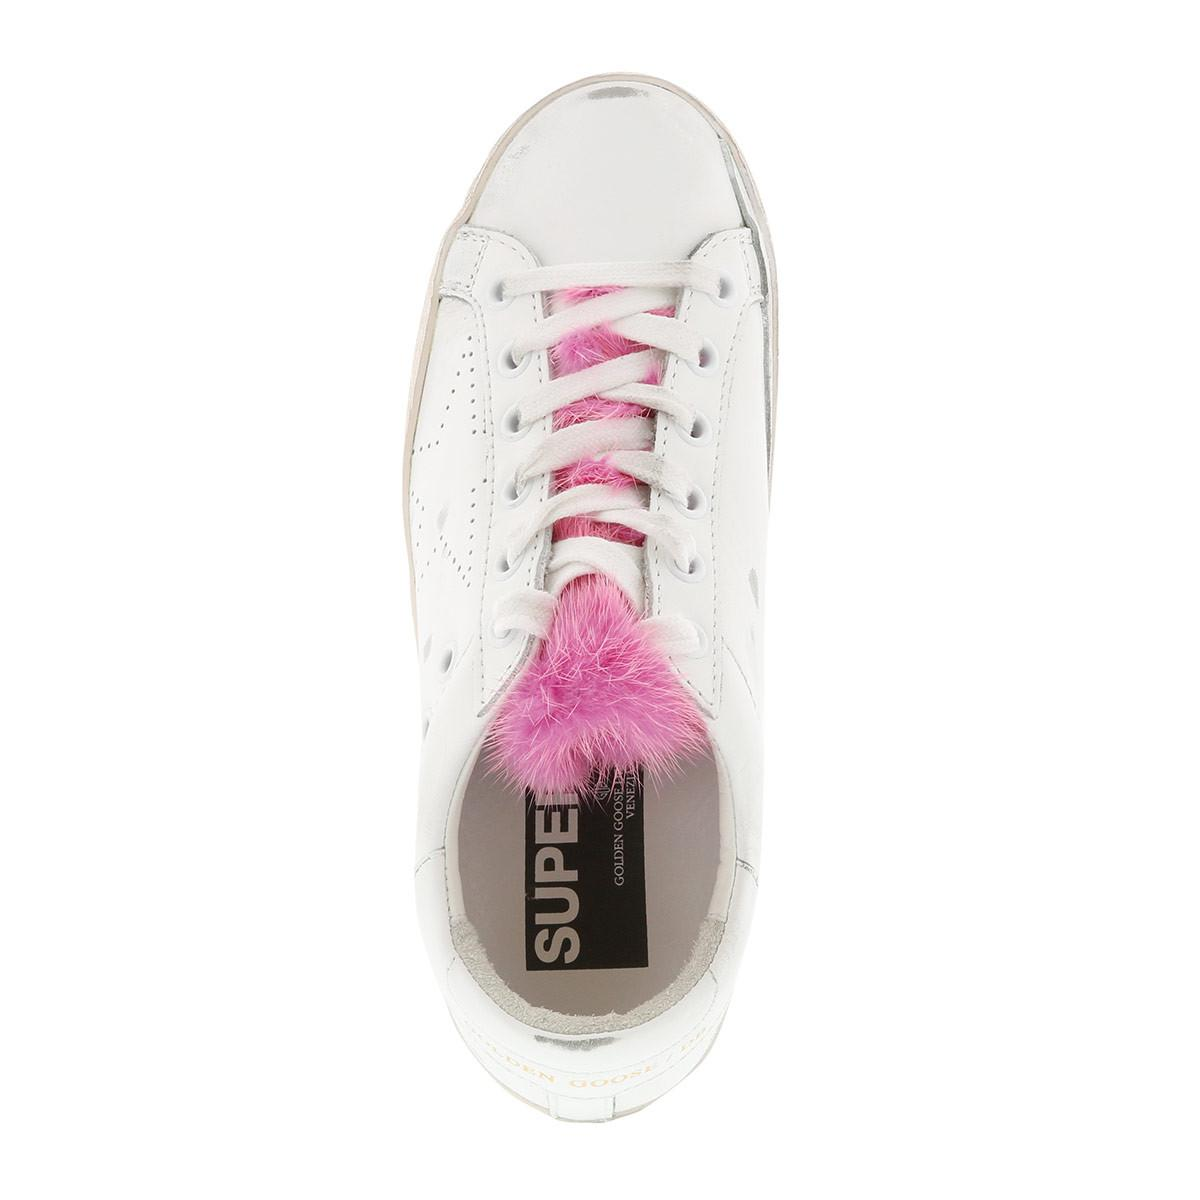 Golden Goose Deluxe Brand Leather Superstar Sneakers White/pink